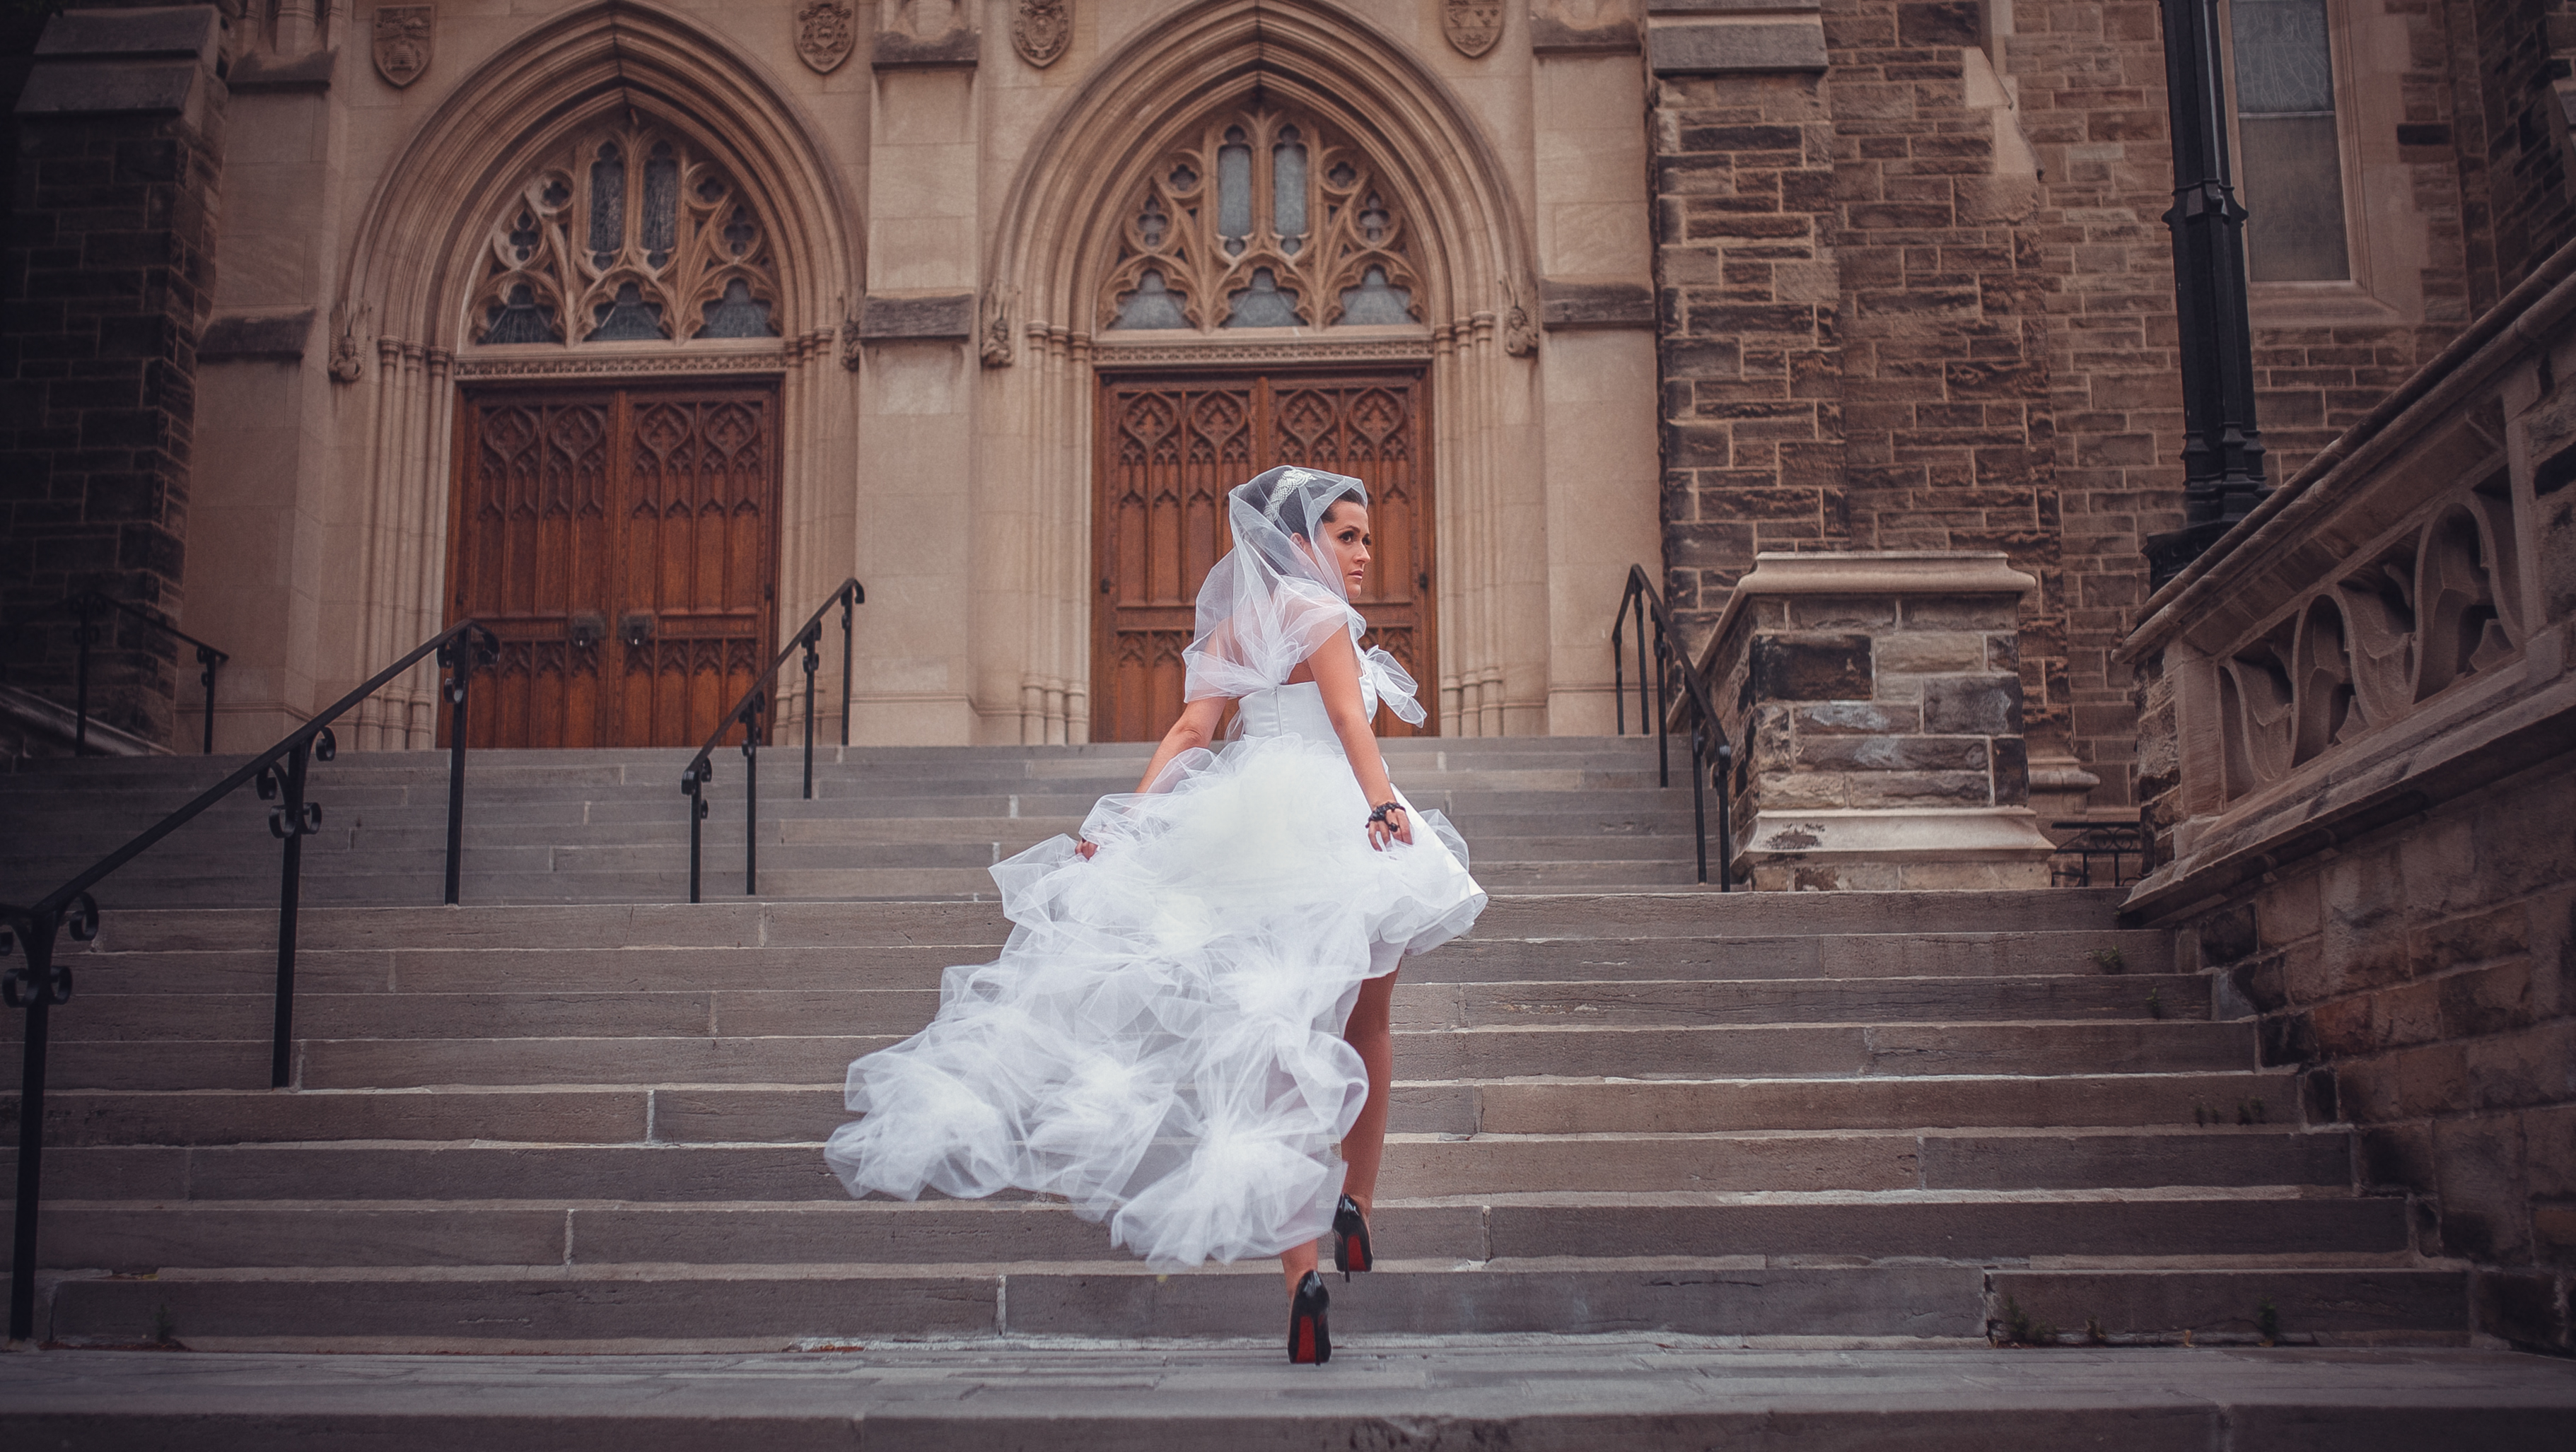 wedding photo shoot ideas urban